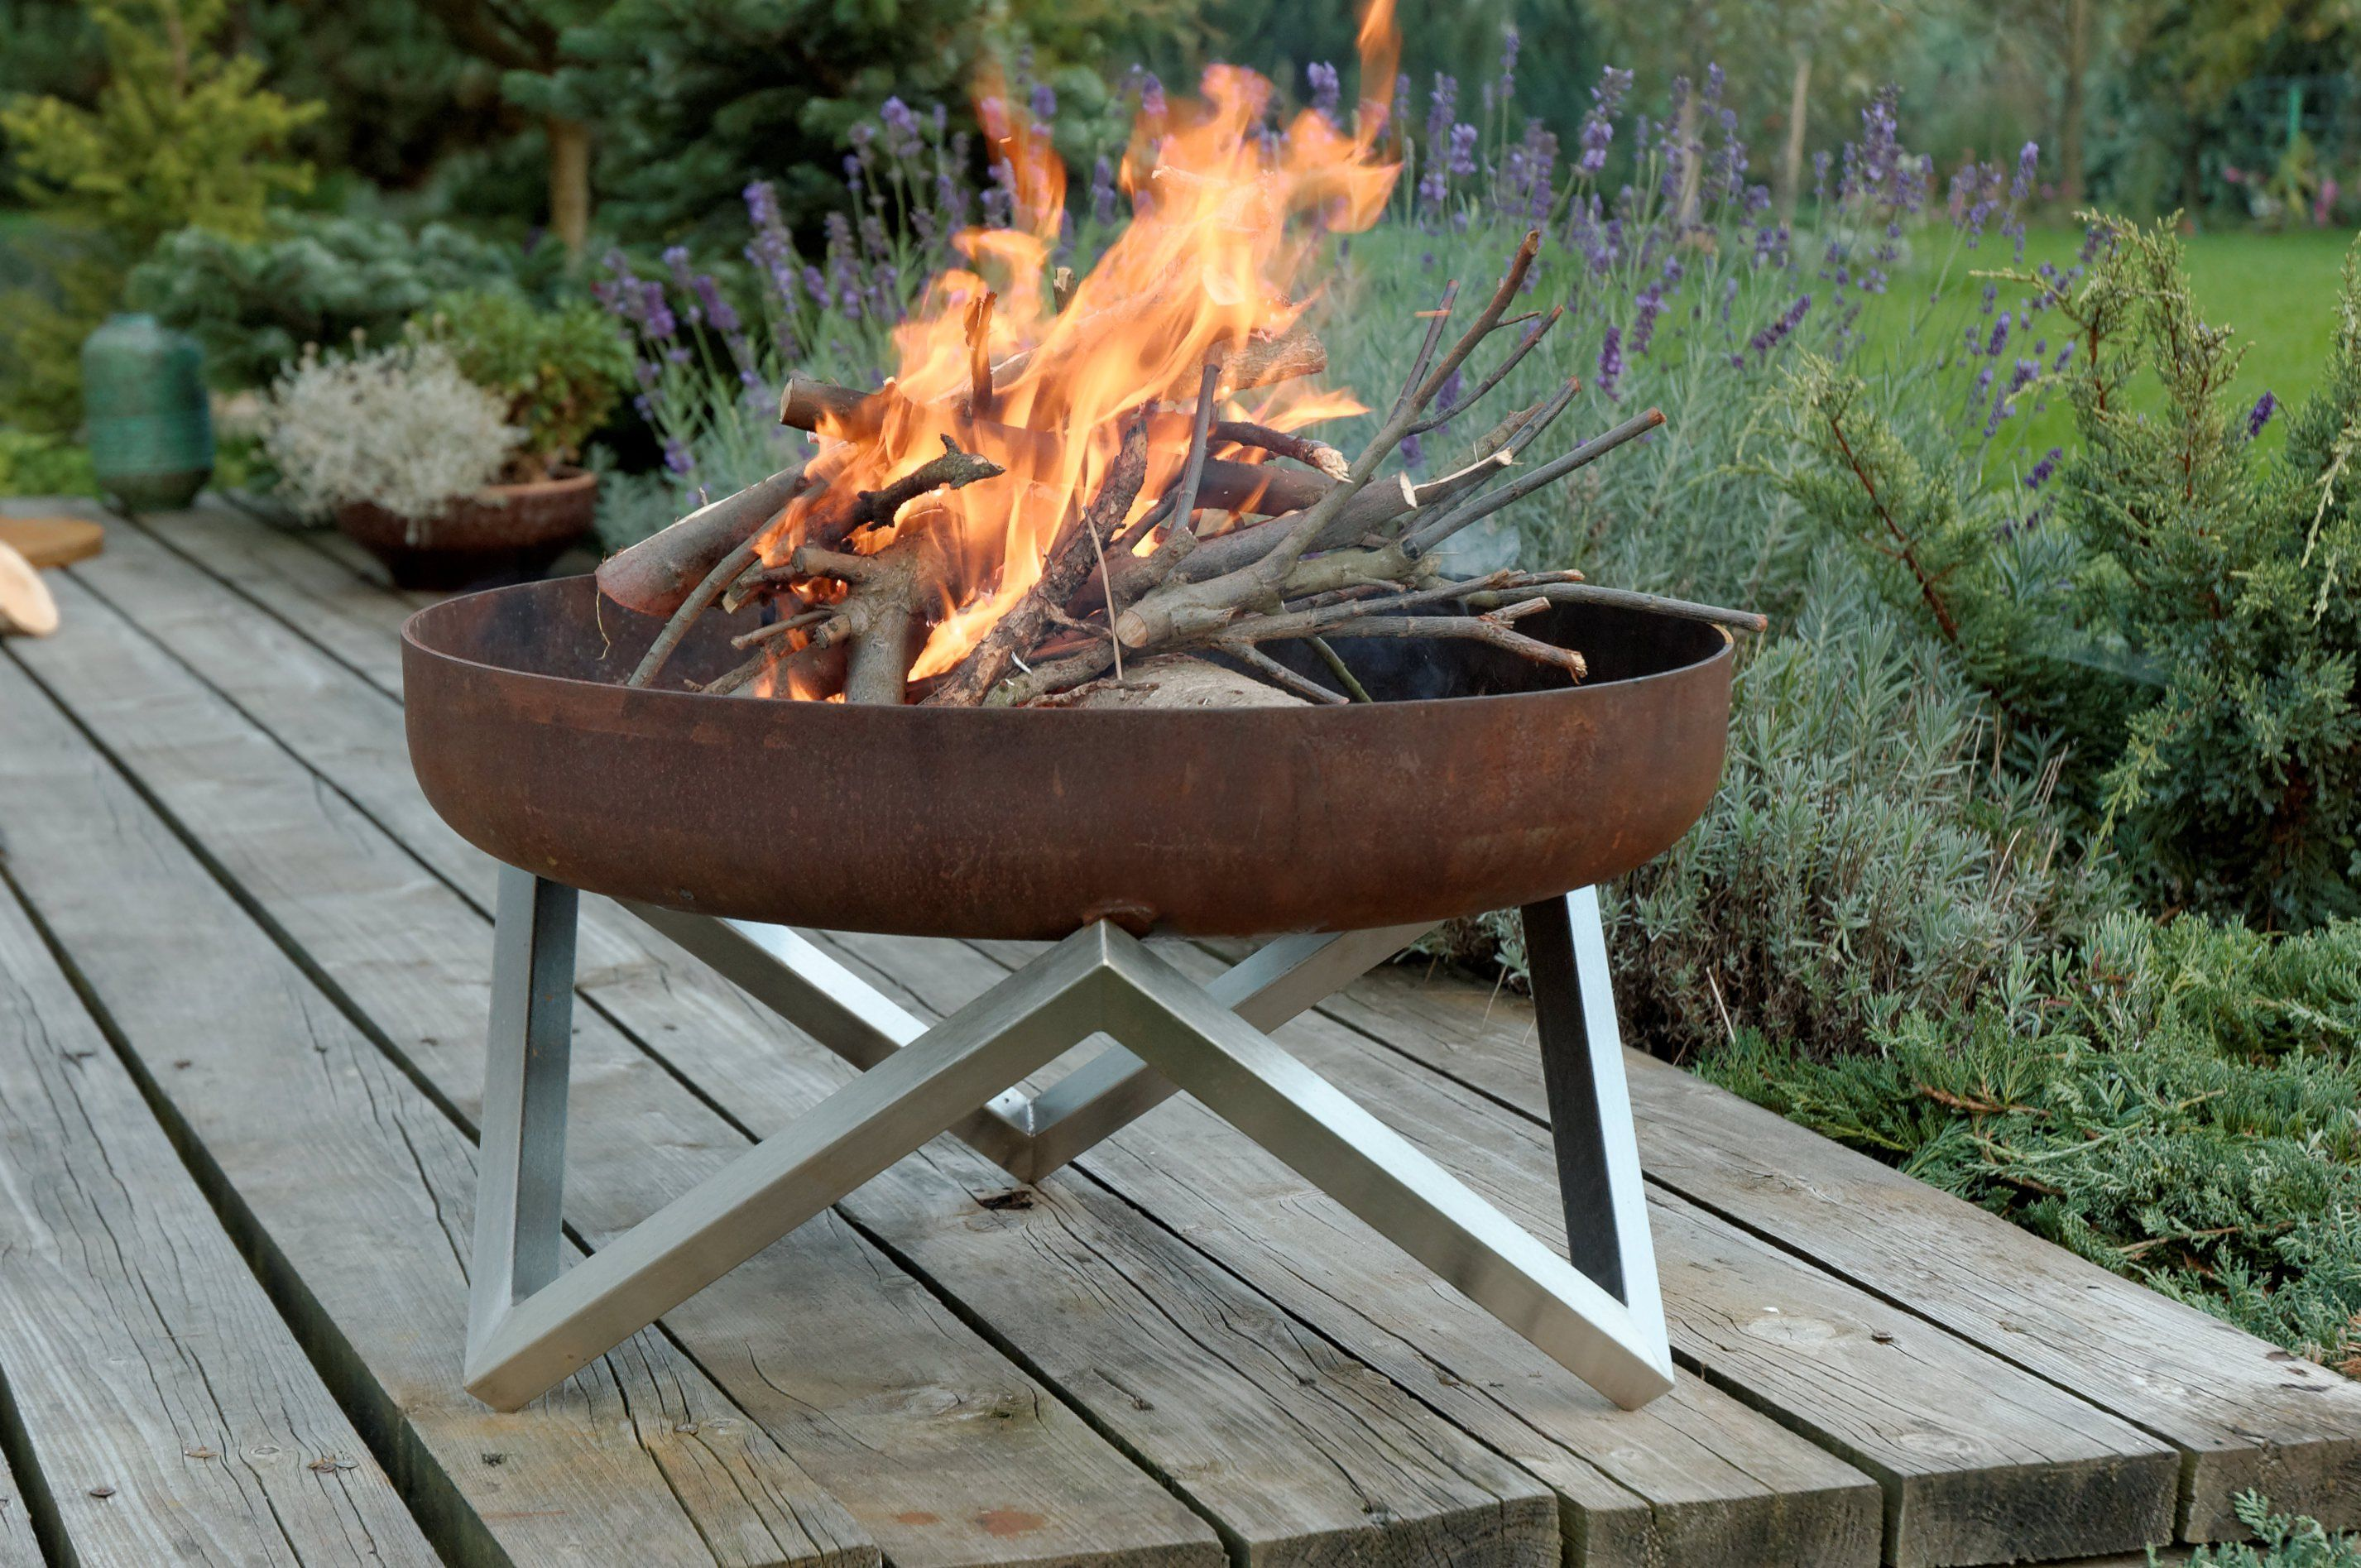 Buy Hand Crafted Rust Stainless Steel Modern Outdoor Patio Fire Pit Memel Medium Made To Order From Curonian Deco Custommade Com